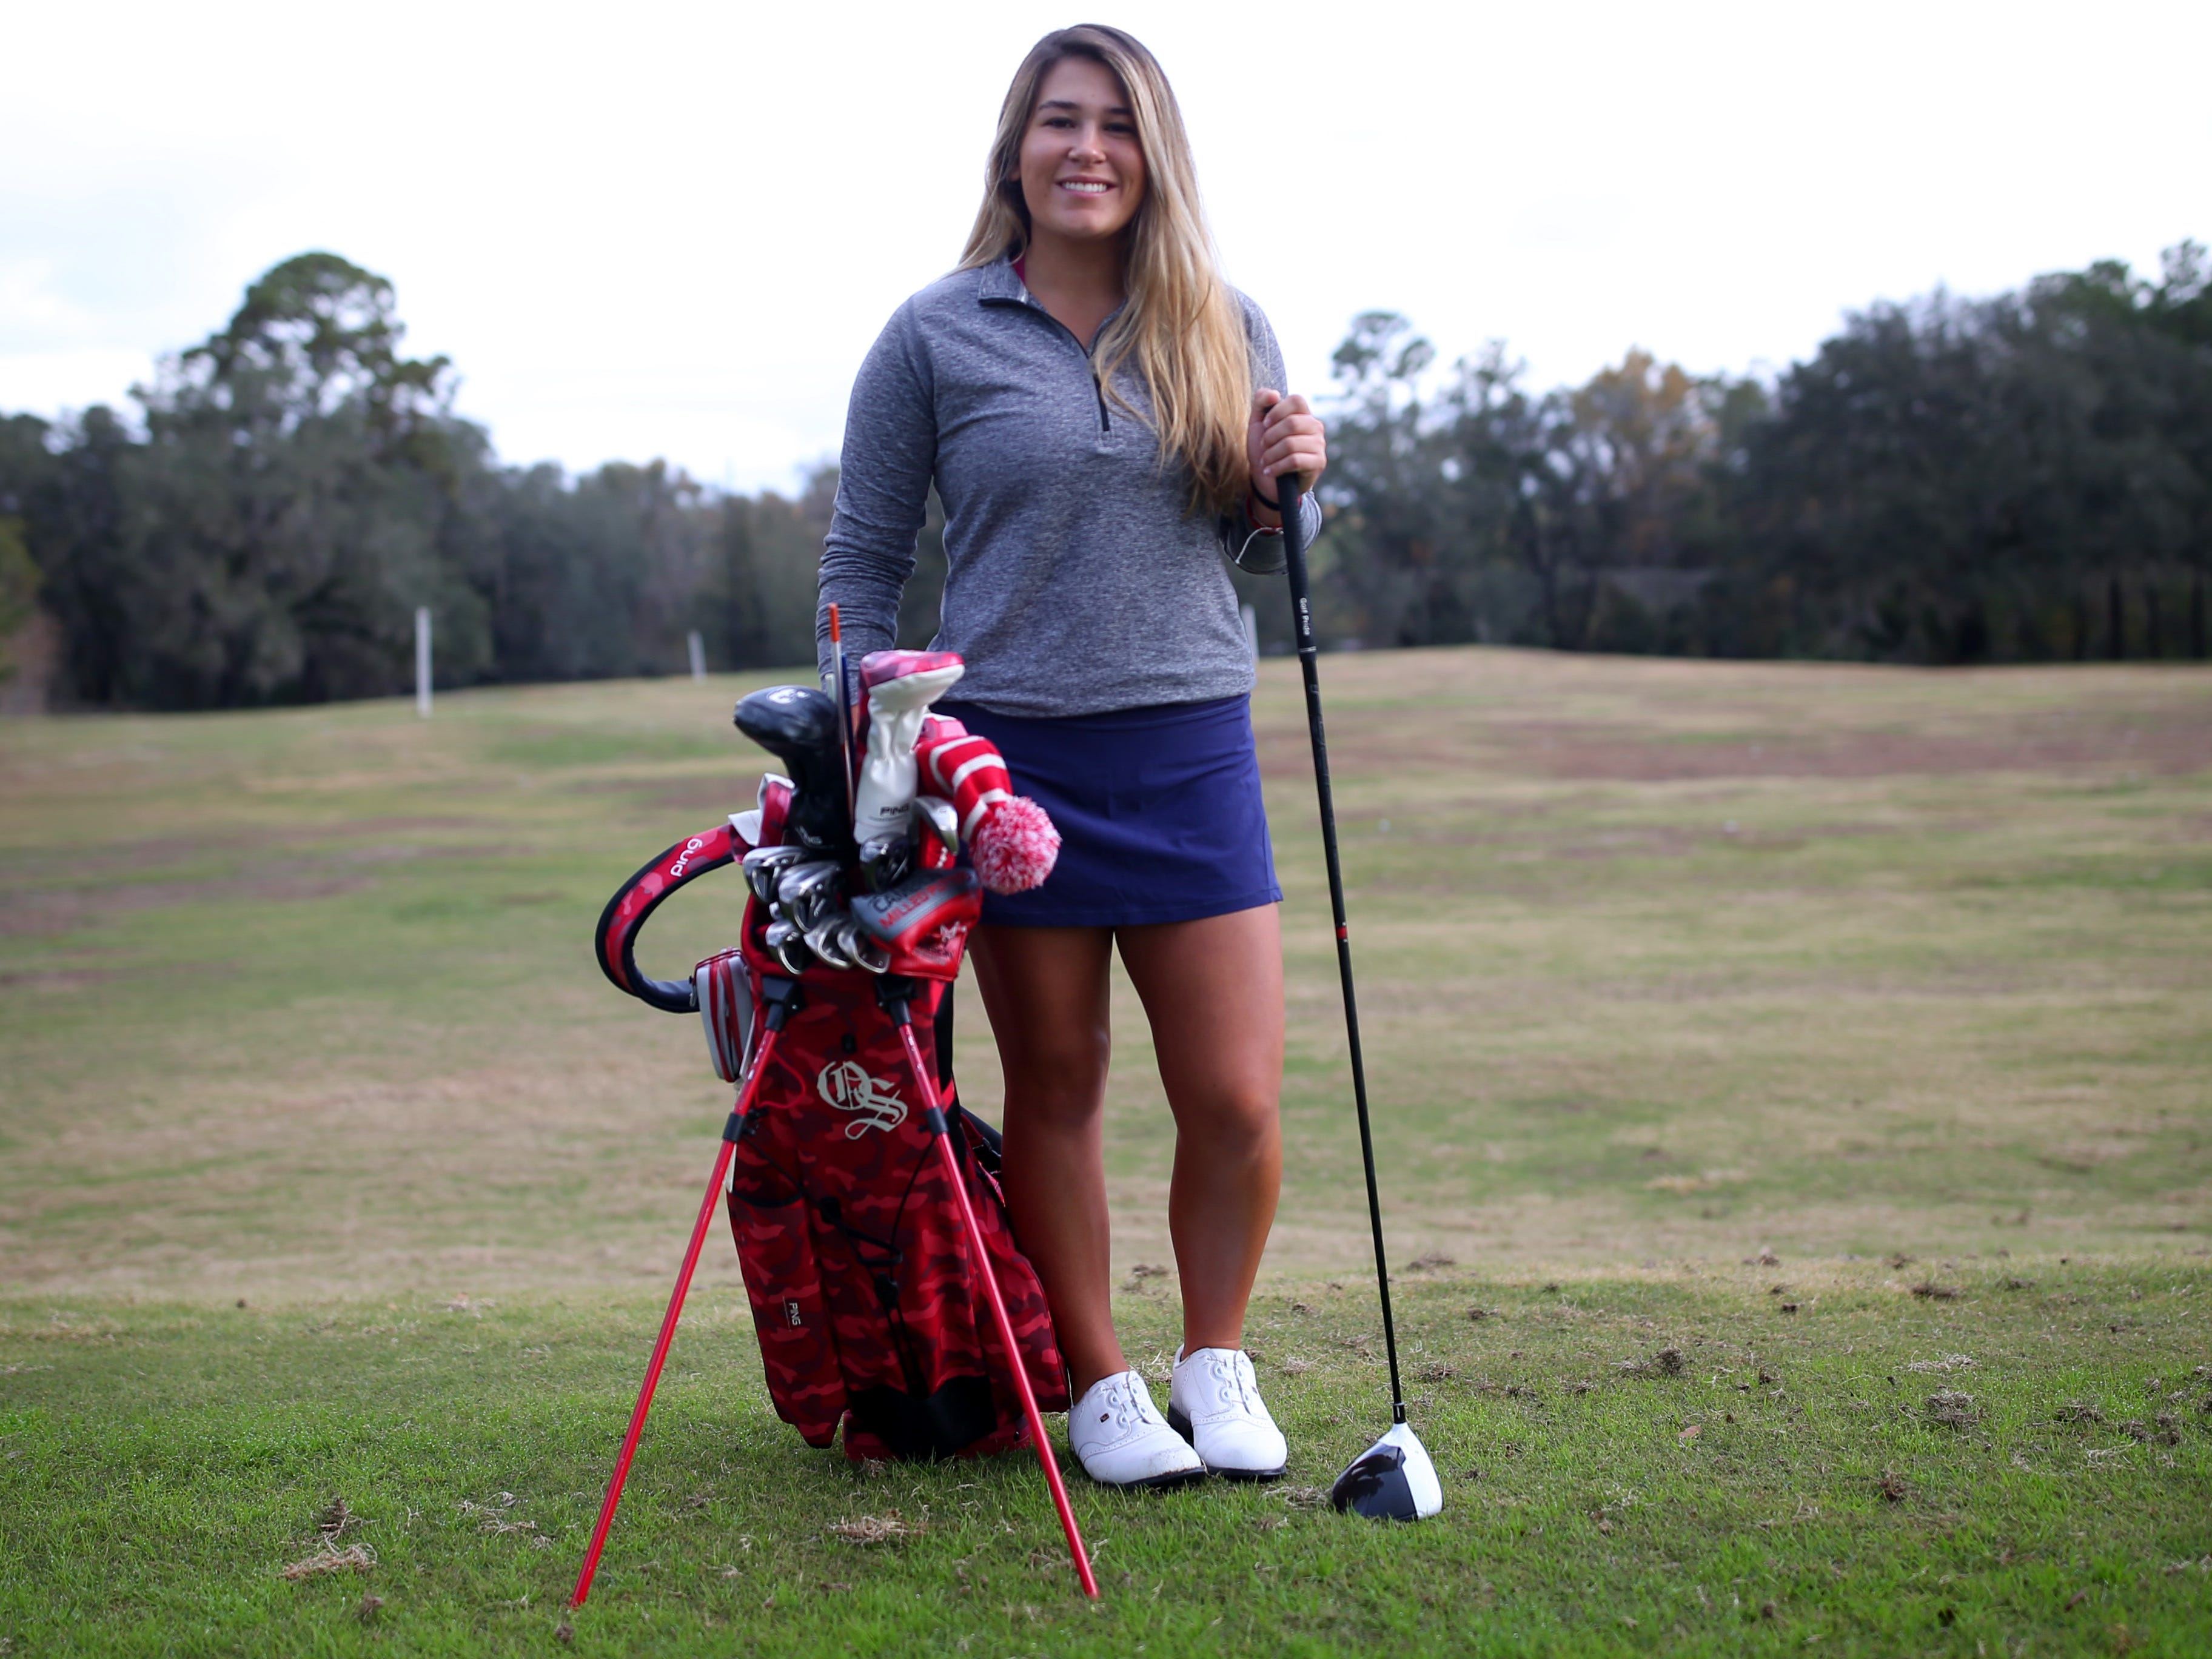 Aucilla Christian senior Megan Schofill was named the 2018 All-Big Bend Golfer of the Year in girls golf after finishing tied for sixth at the Class 1A state tournament, winning district and regional titles. She also finished in the top 10 in the boys Big Bend Championship and tied for second in the boys City Championship. Schofill, an Auburn signee, is one of three golfers in area history to become a three-time Golfer of the Year.